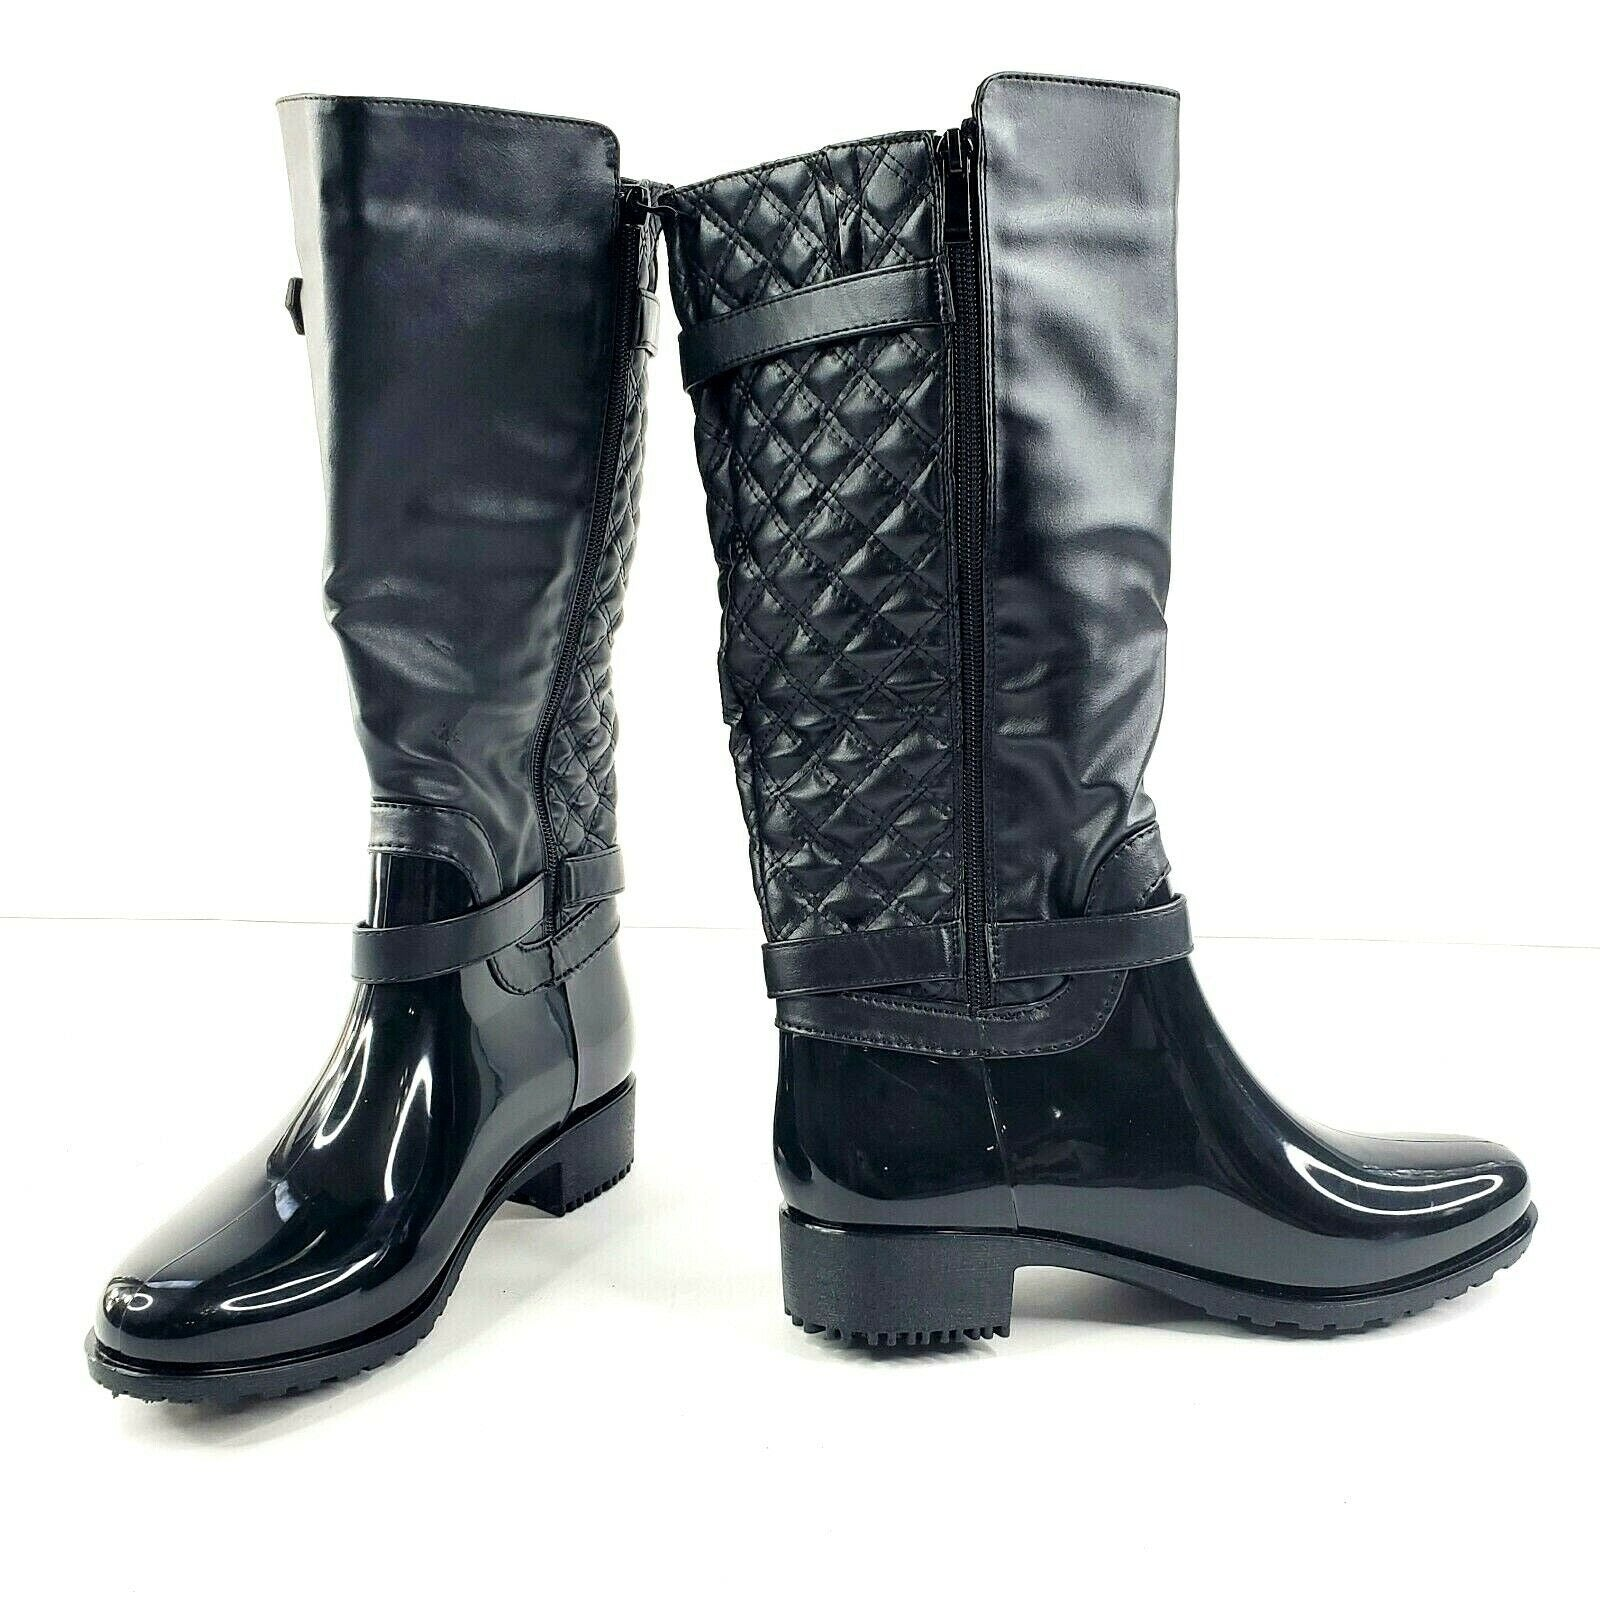 Top Moda Rainy-6 Women's Black Rubber Studded Buckle Rain Boots Zip New